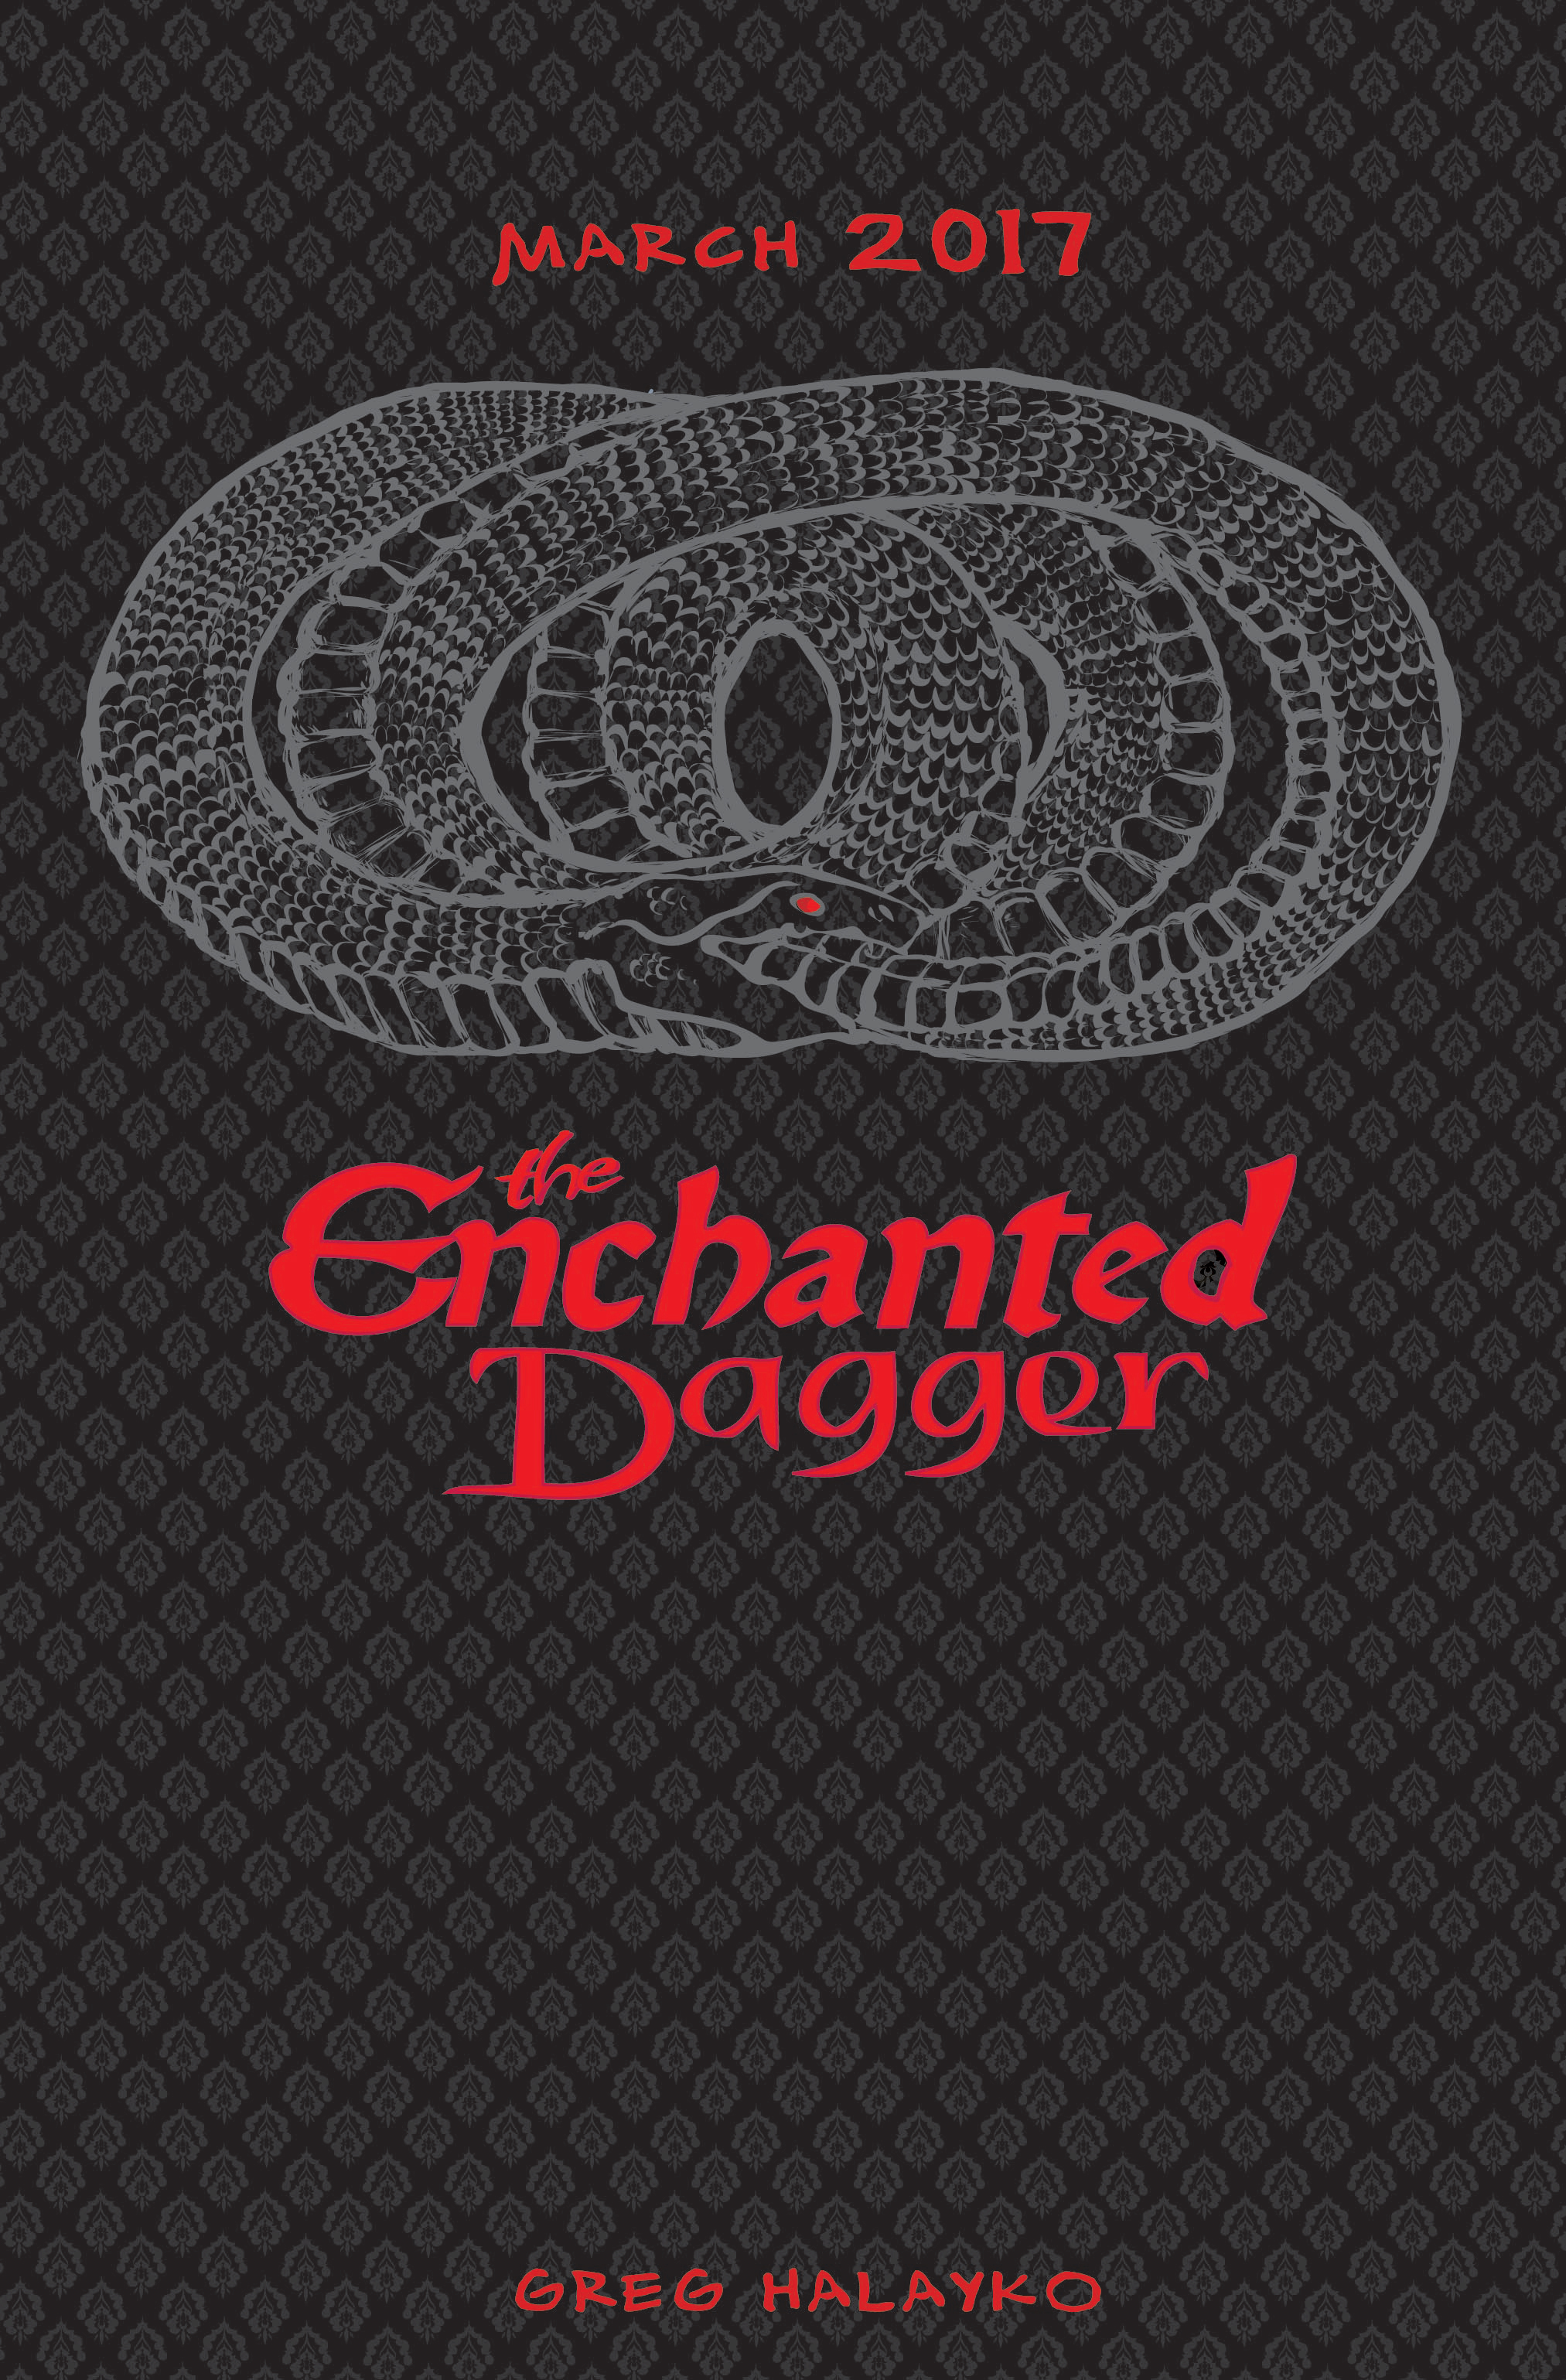 The Enchanted Dagger #1 – Coming Soon